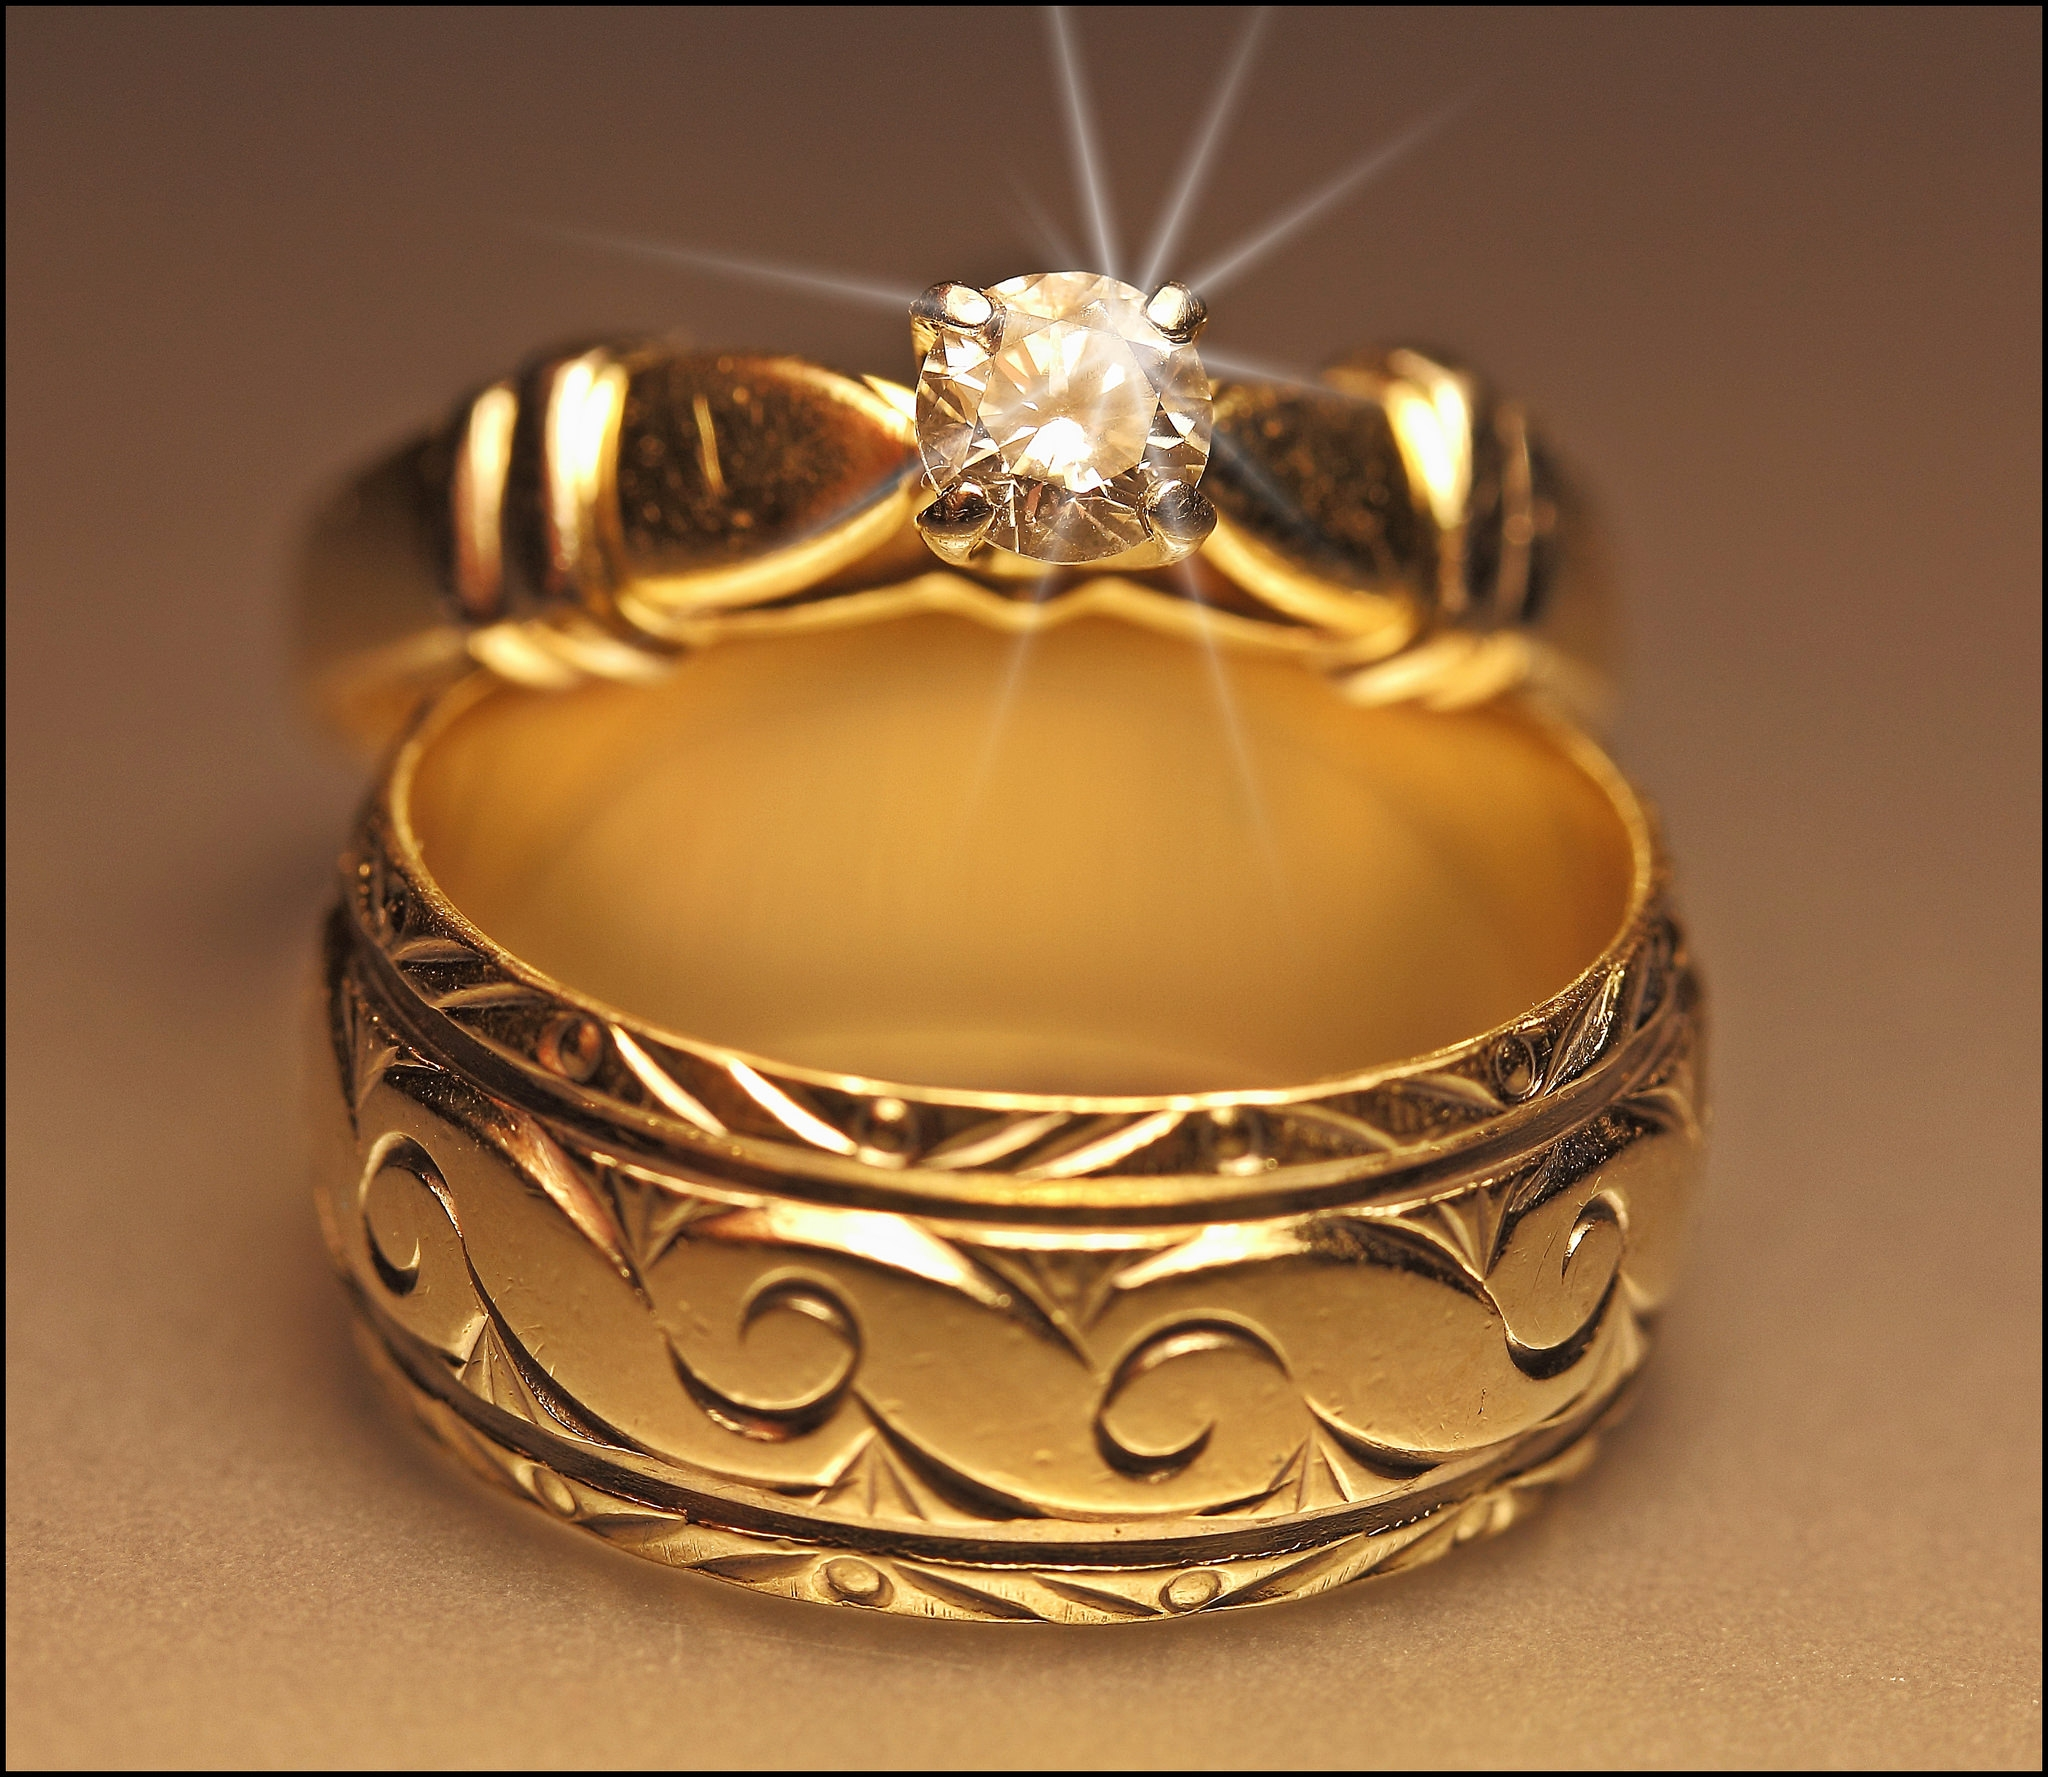 Amazing Design for Gold Ring